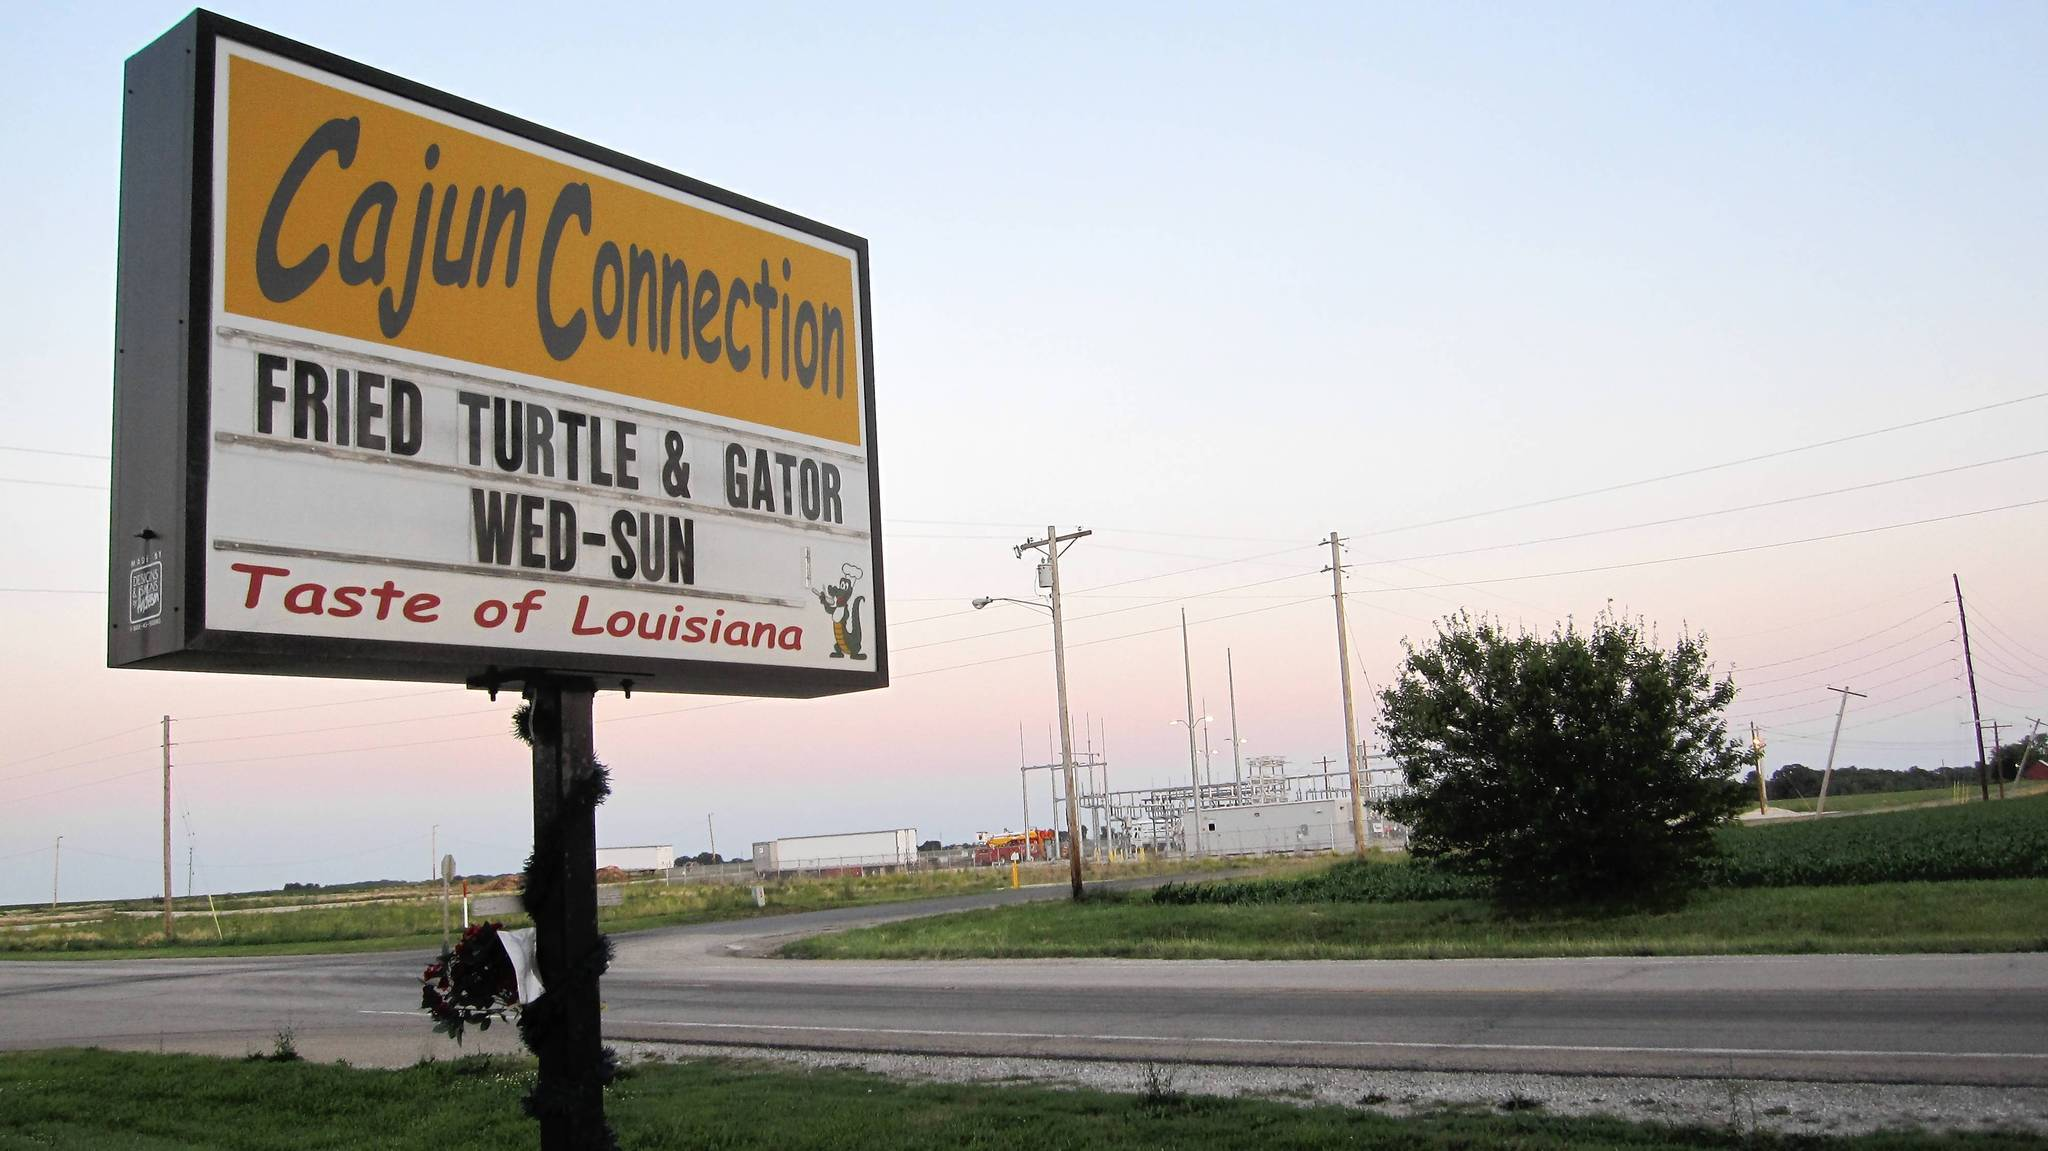 Cajun Connection in North Utica, Ill.